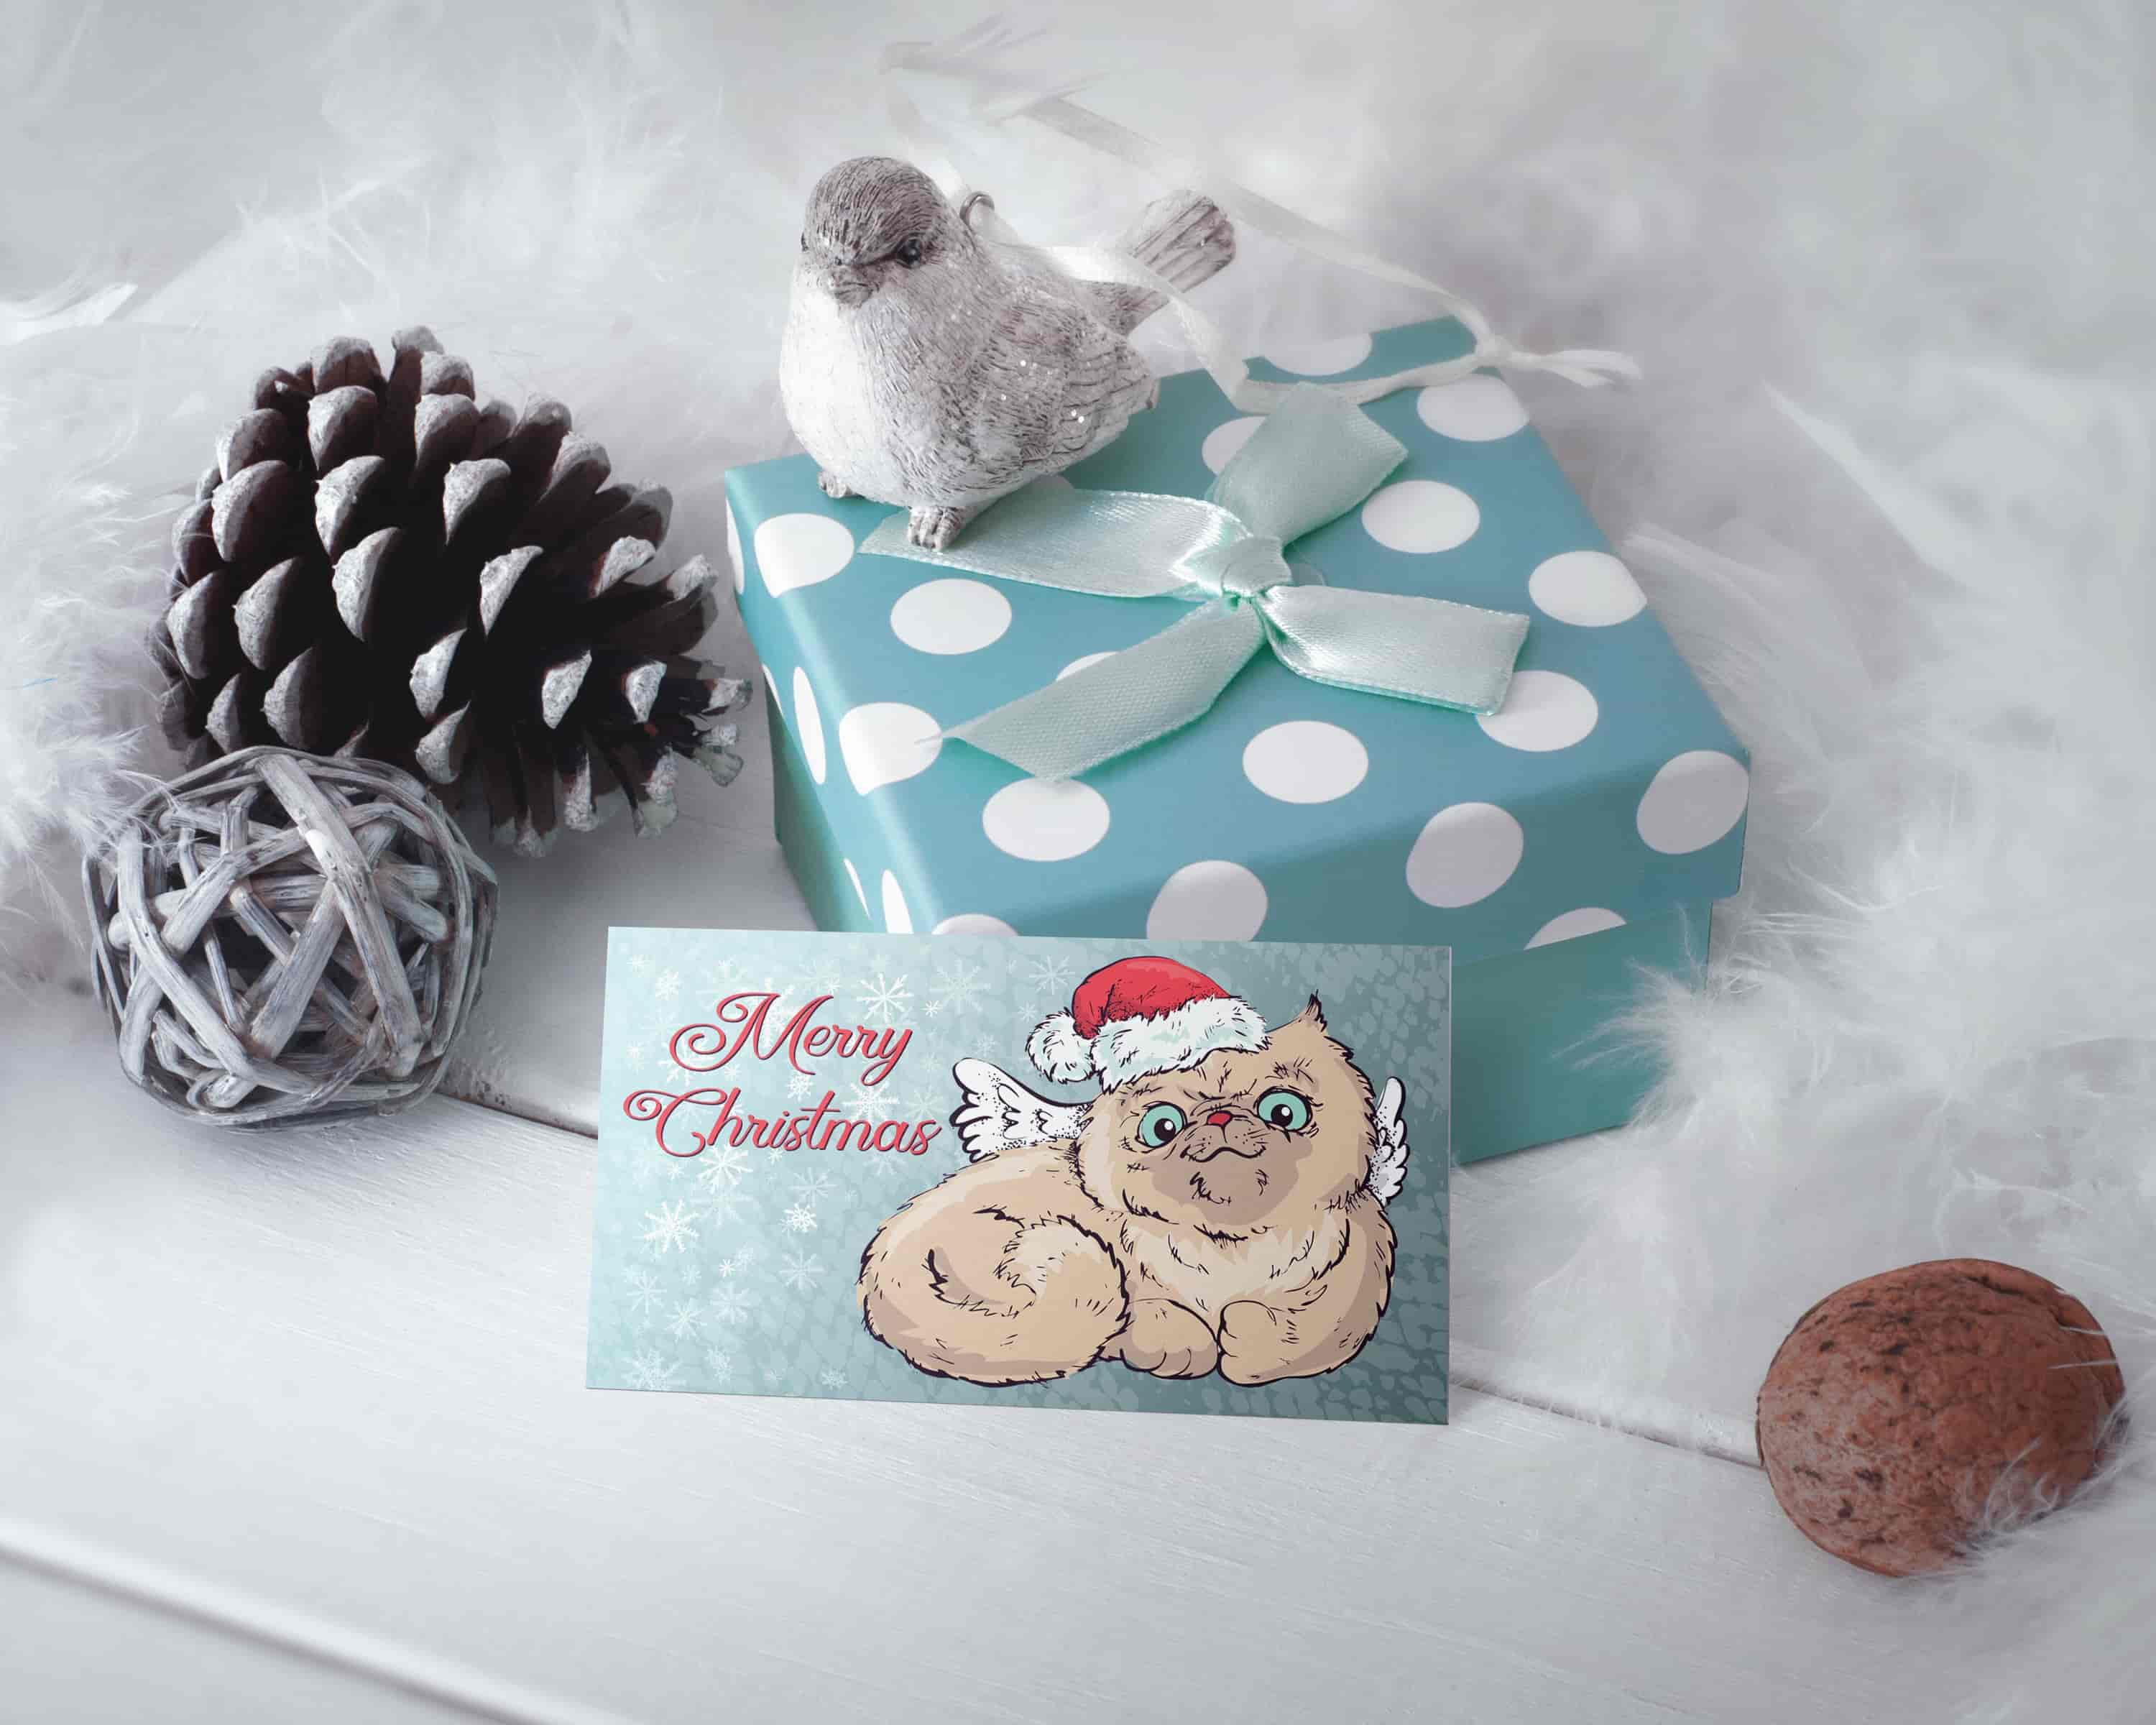 Merry Christmas Images: patterns, cards and items - 10 Image00002 min